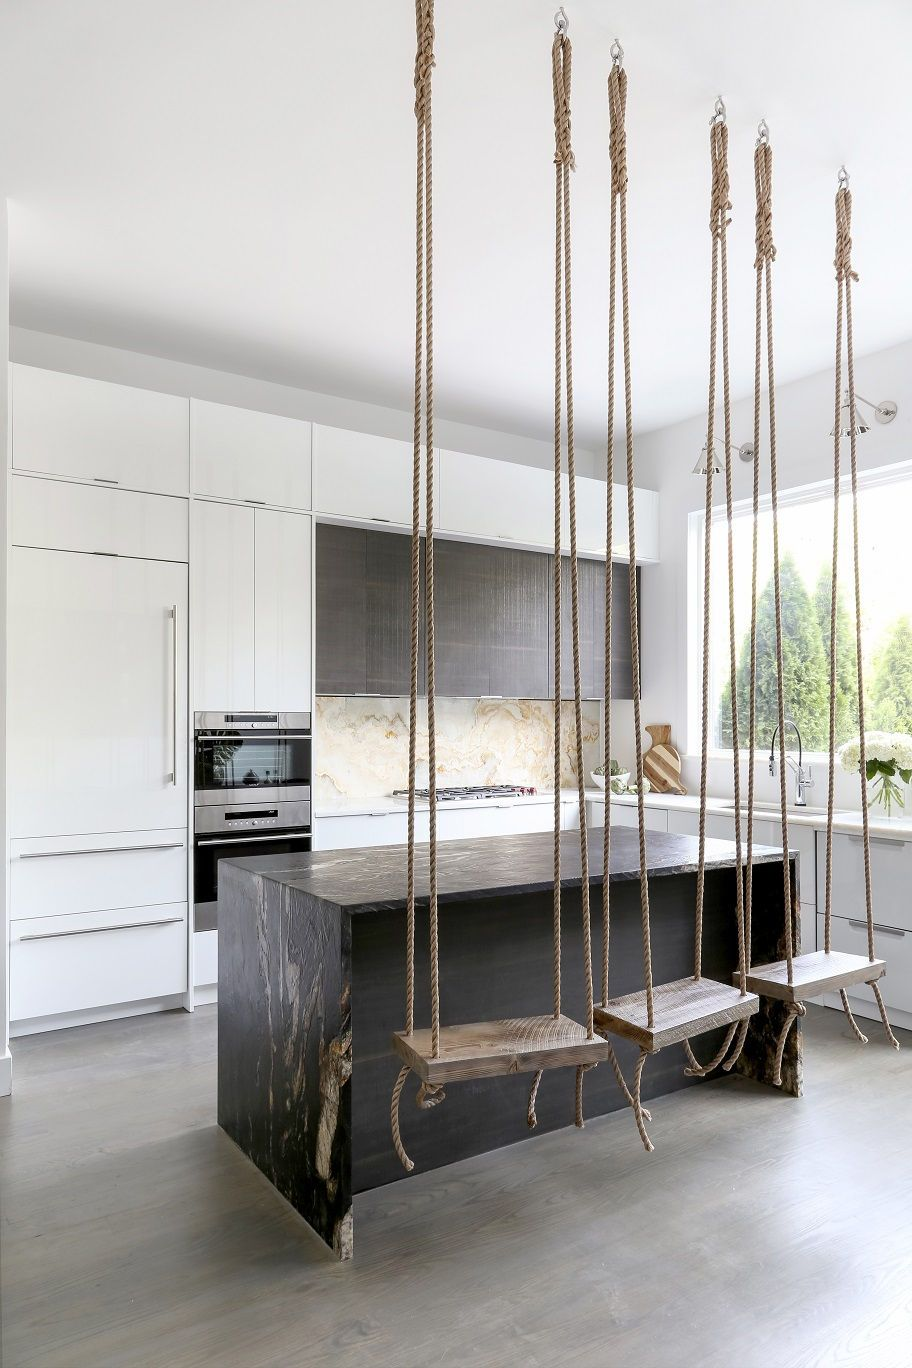 N.J. home makeover: Swings in the kitchen? This $250K Jersey City update brings the fun